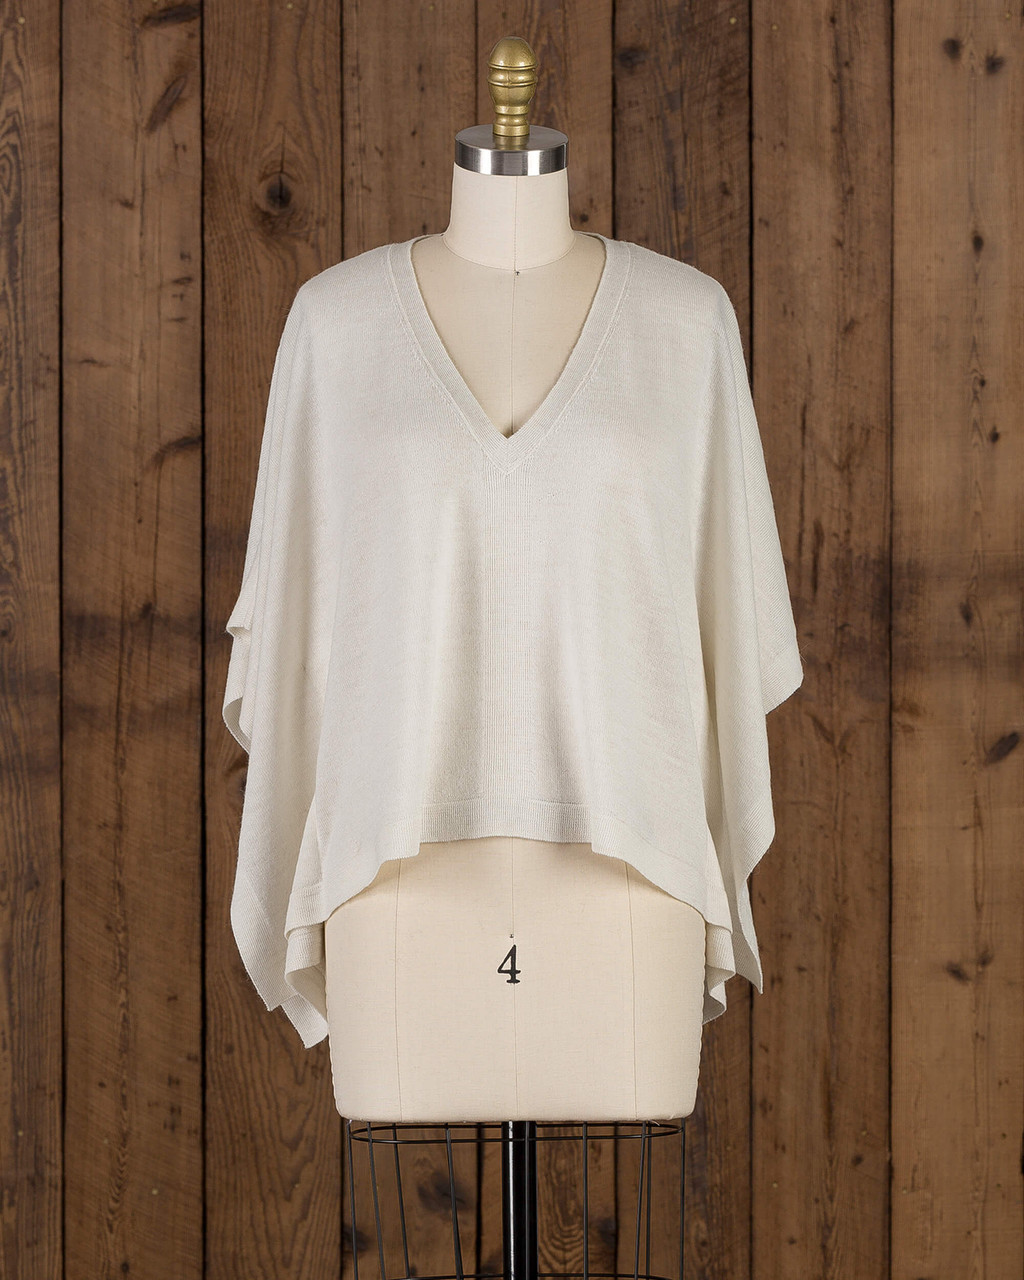 alicia adams alpaca frankie top, womens alpaca sweater, lightweight alpaca sweater, white womens alpaca sweater